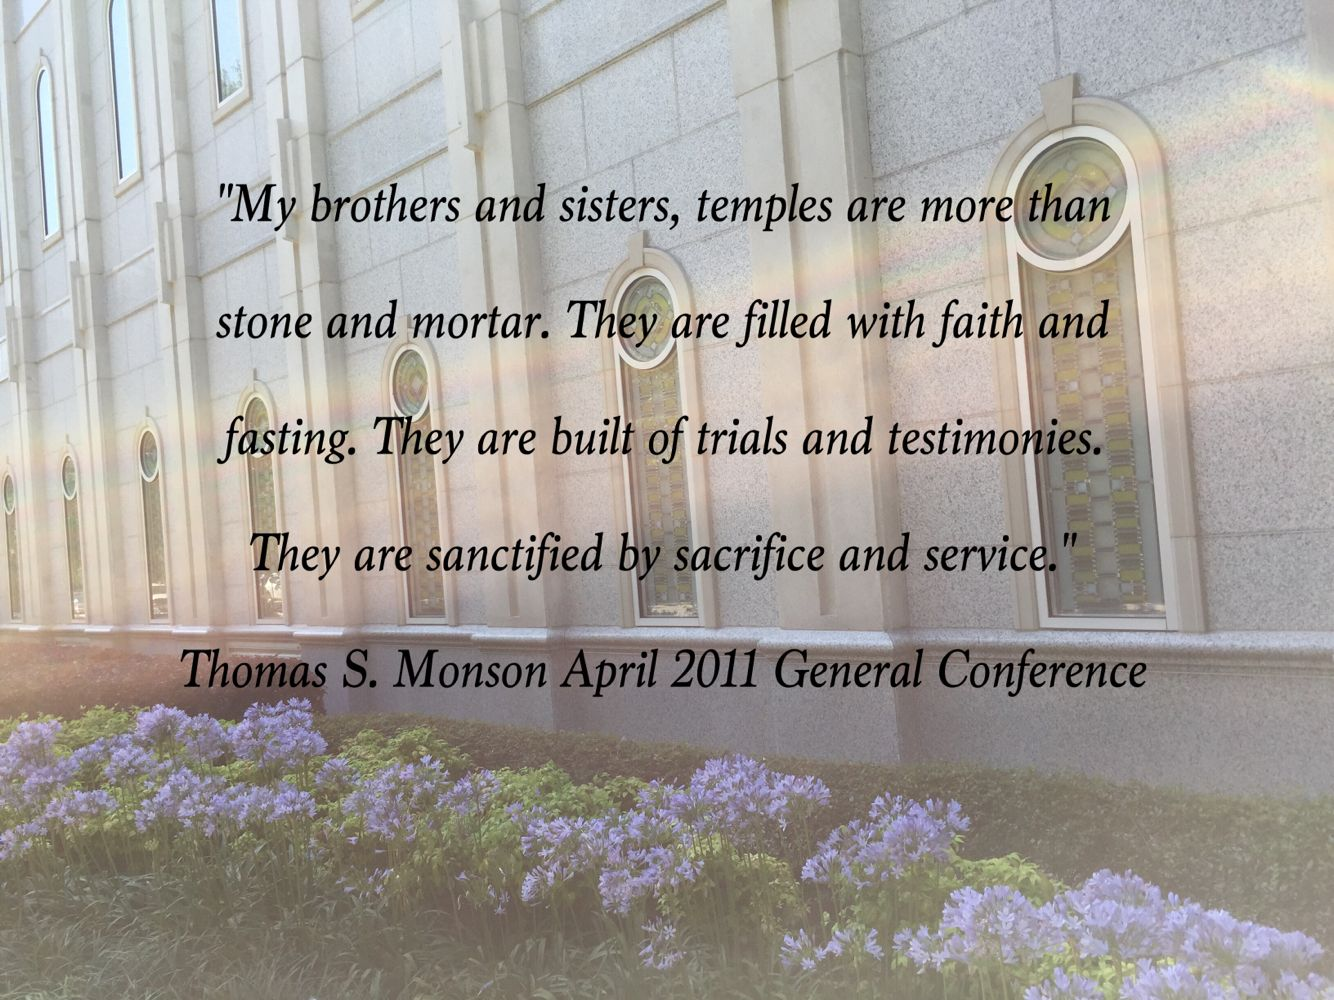 https://www.lds.org/general-conference/2011/04/the-holy-temple-a-beacon-to-the-world?lang=eng   The temple truly is a beacon to the world!